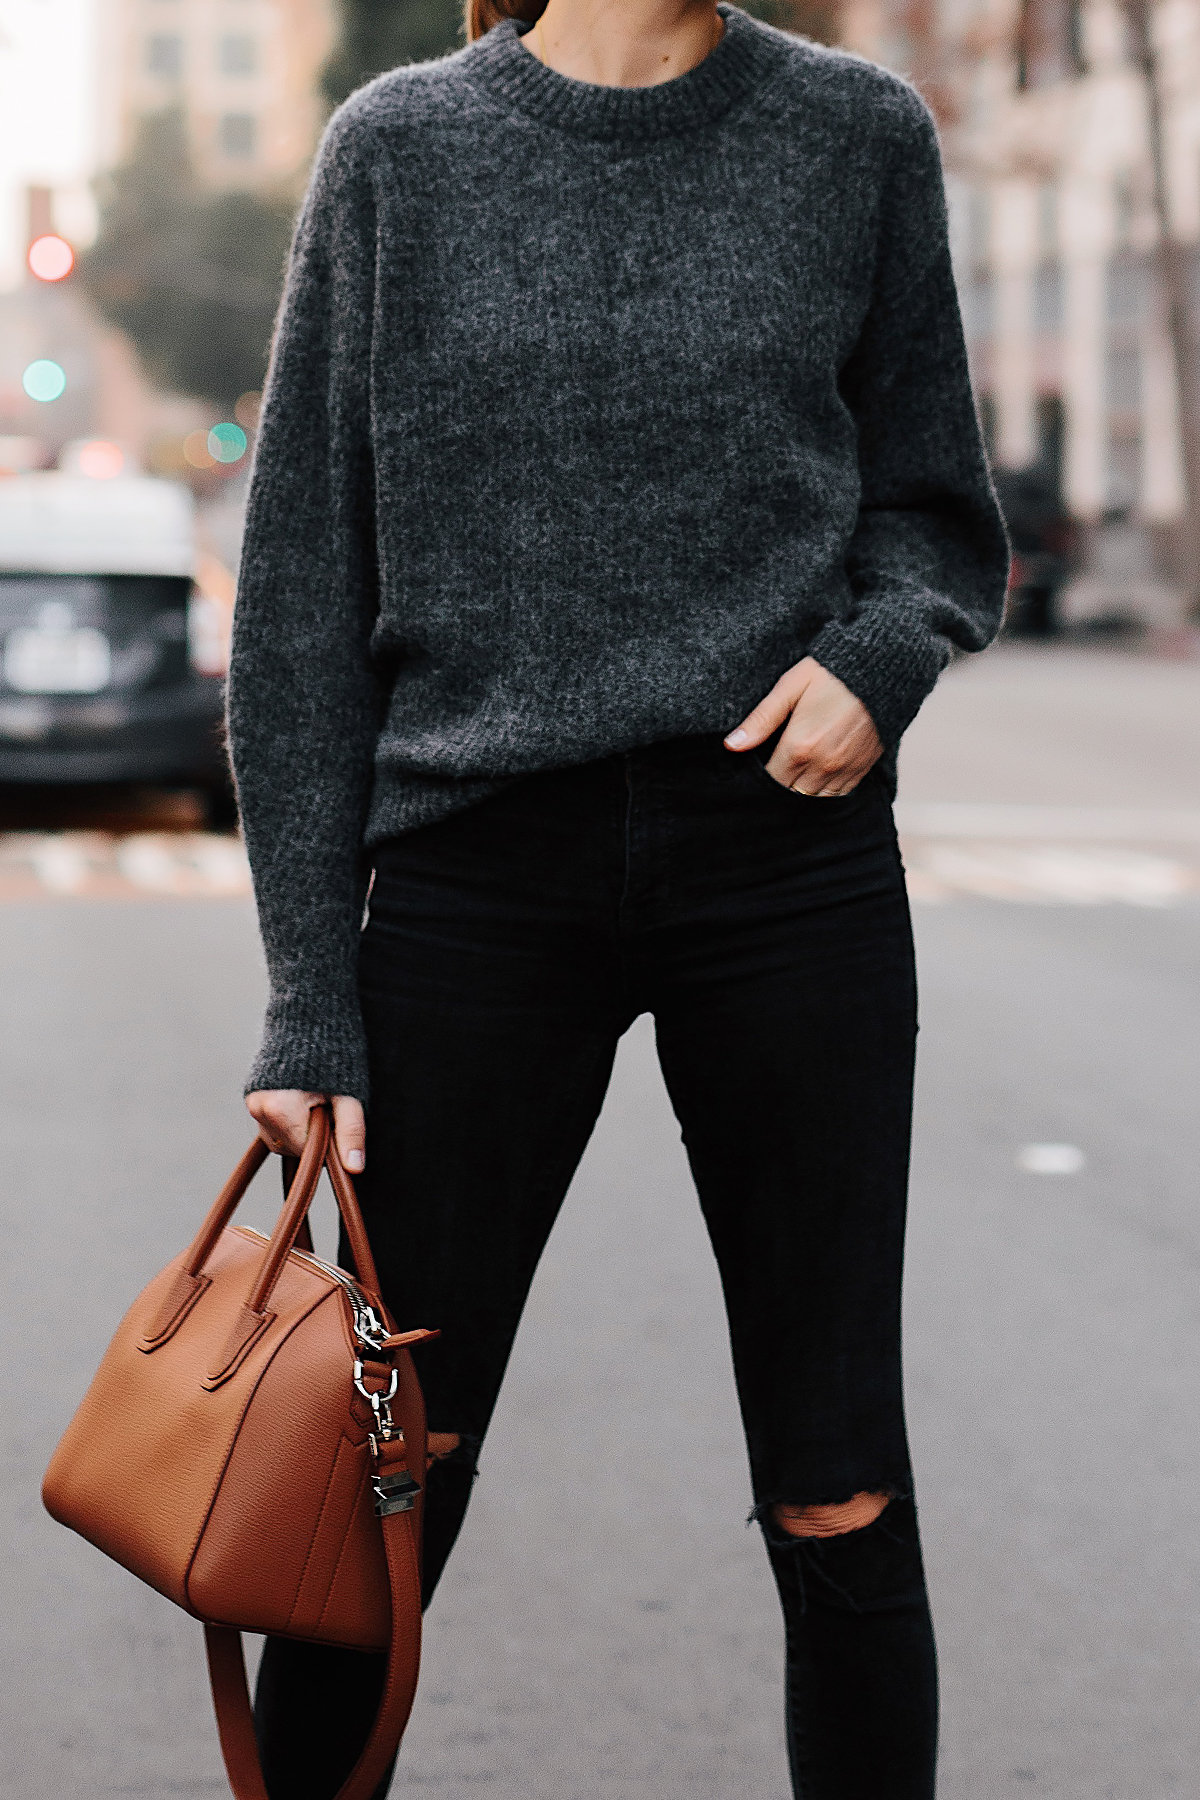 Woman Wearing Everlane Alpaca Dark Grey Sweater Black Ripped Skinny Jeans Tan Satchel Handbag Fashion Jackson San Diego Fashion Blogger Street Style